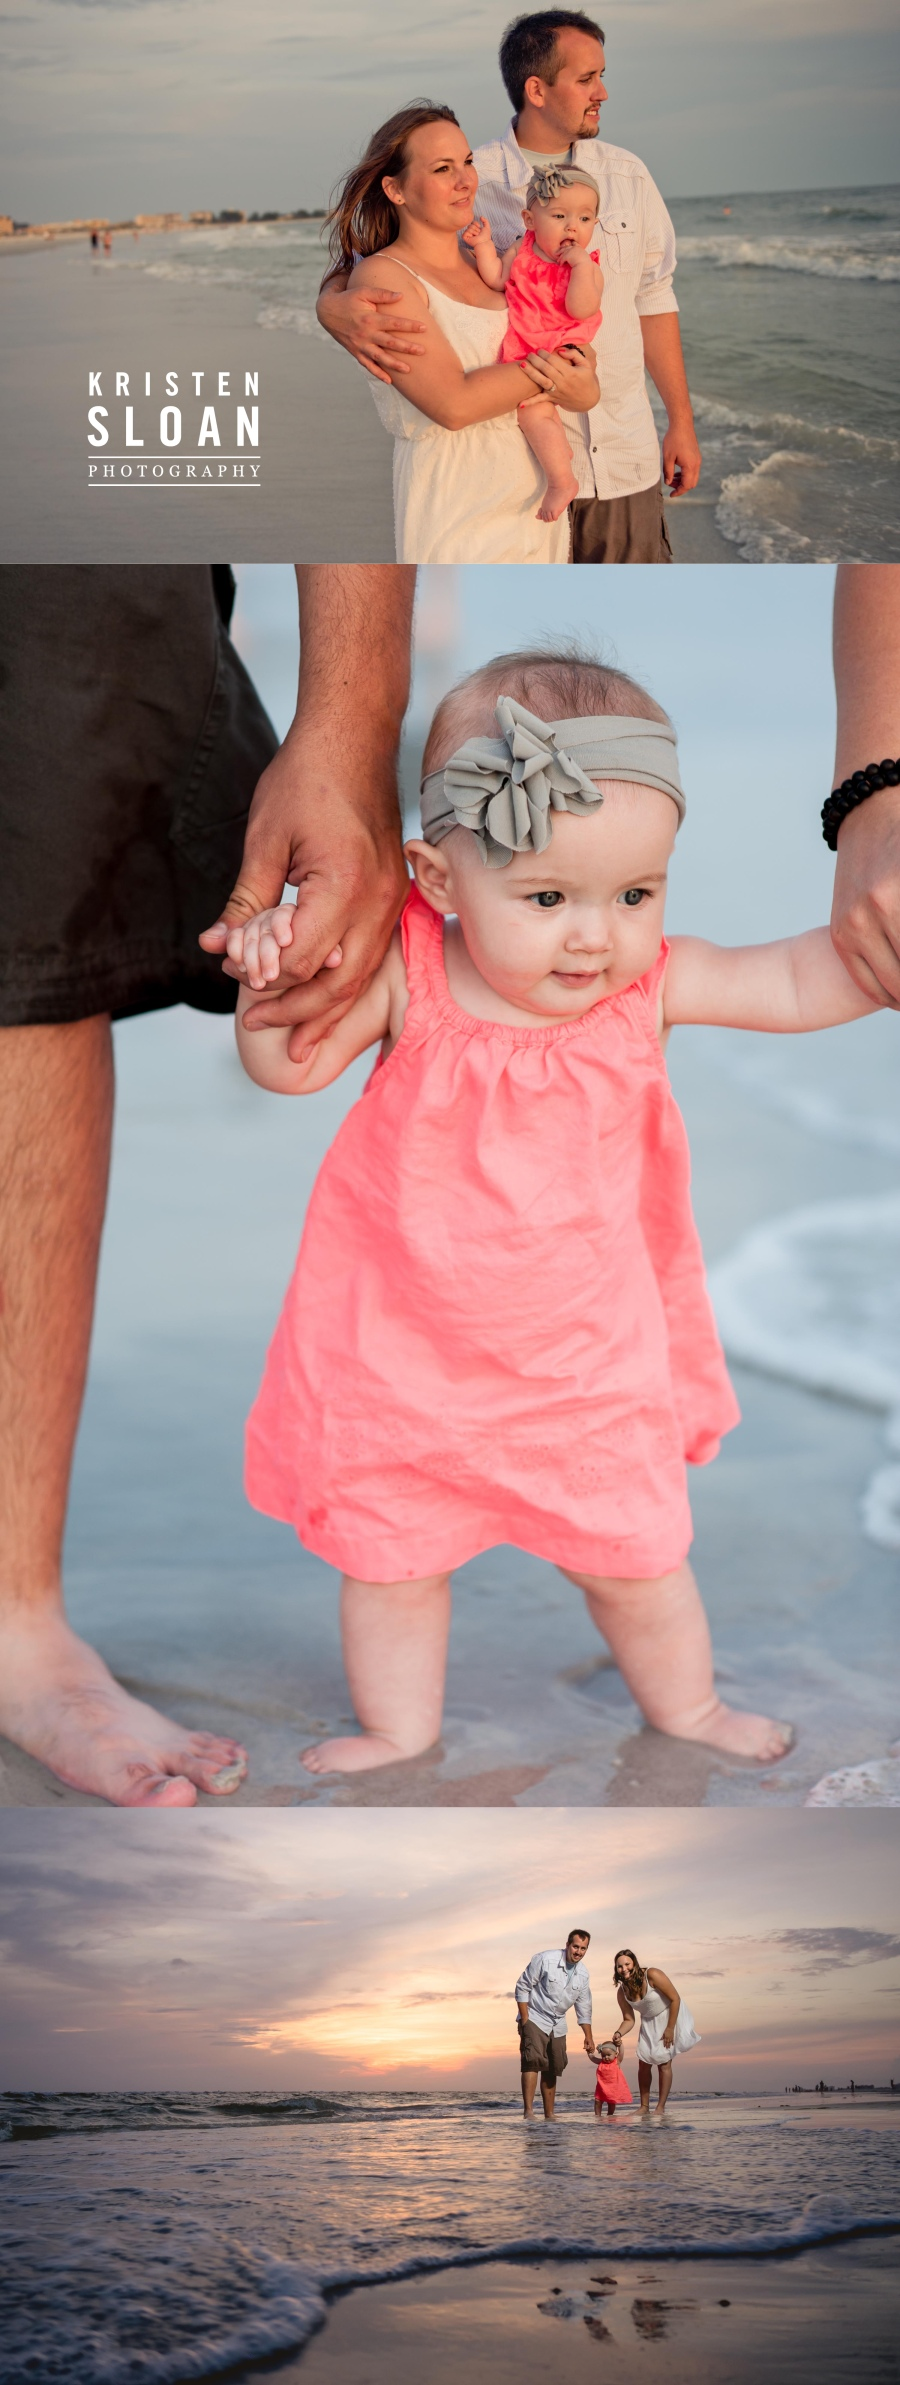 St Pete Beach FL Family Baby Kids Photographer Kristen Sloan